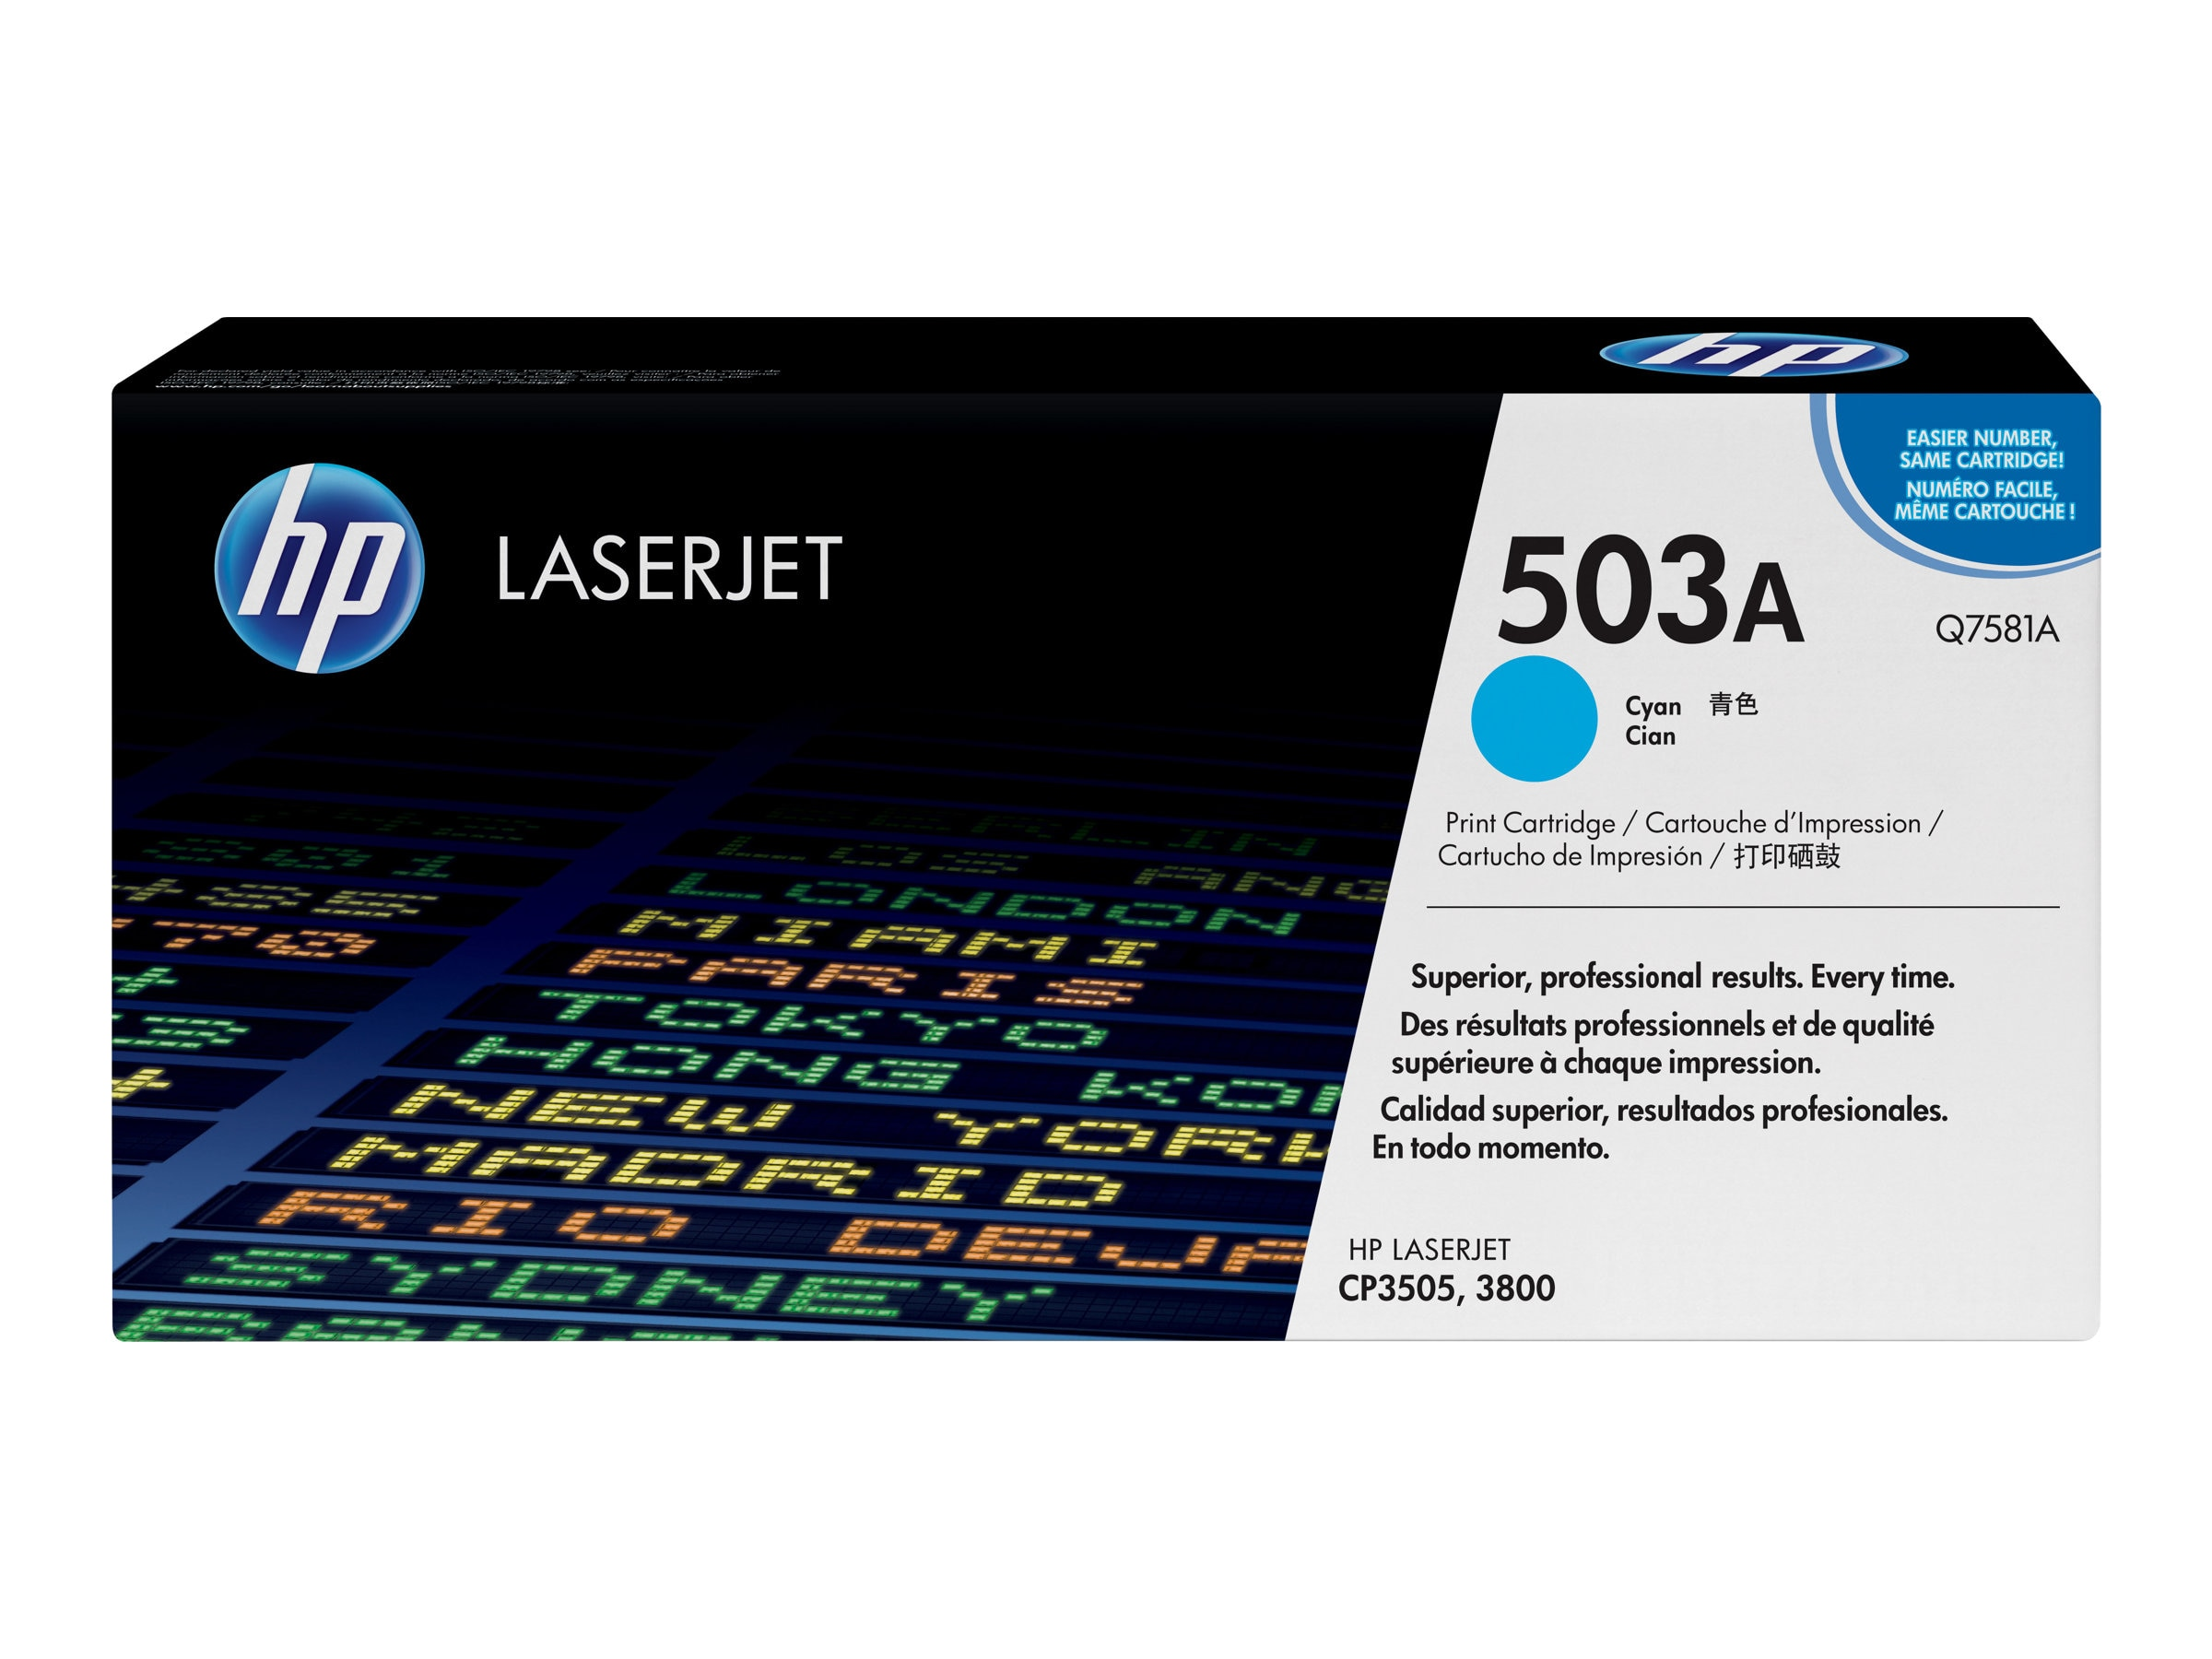 HP 503A (Q7581A) Cyan Original LaserJet Toner Cartridge for HP Color LaserJet 3800 Series Printers, Q7581A, 6133550, Toner and Imaging Components